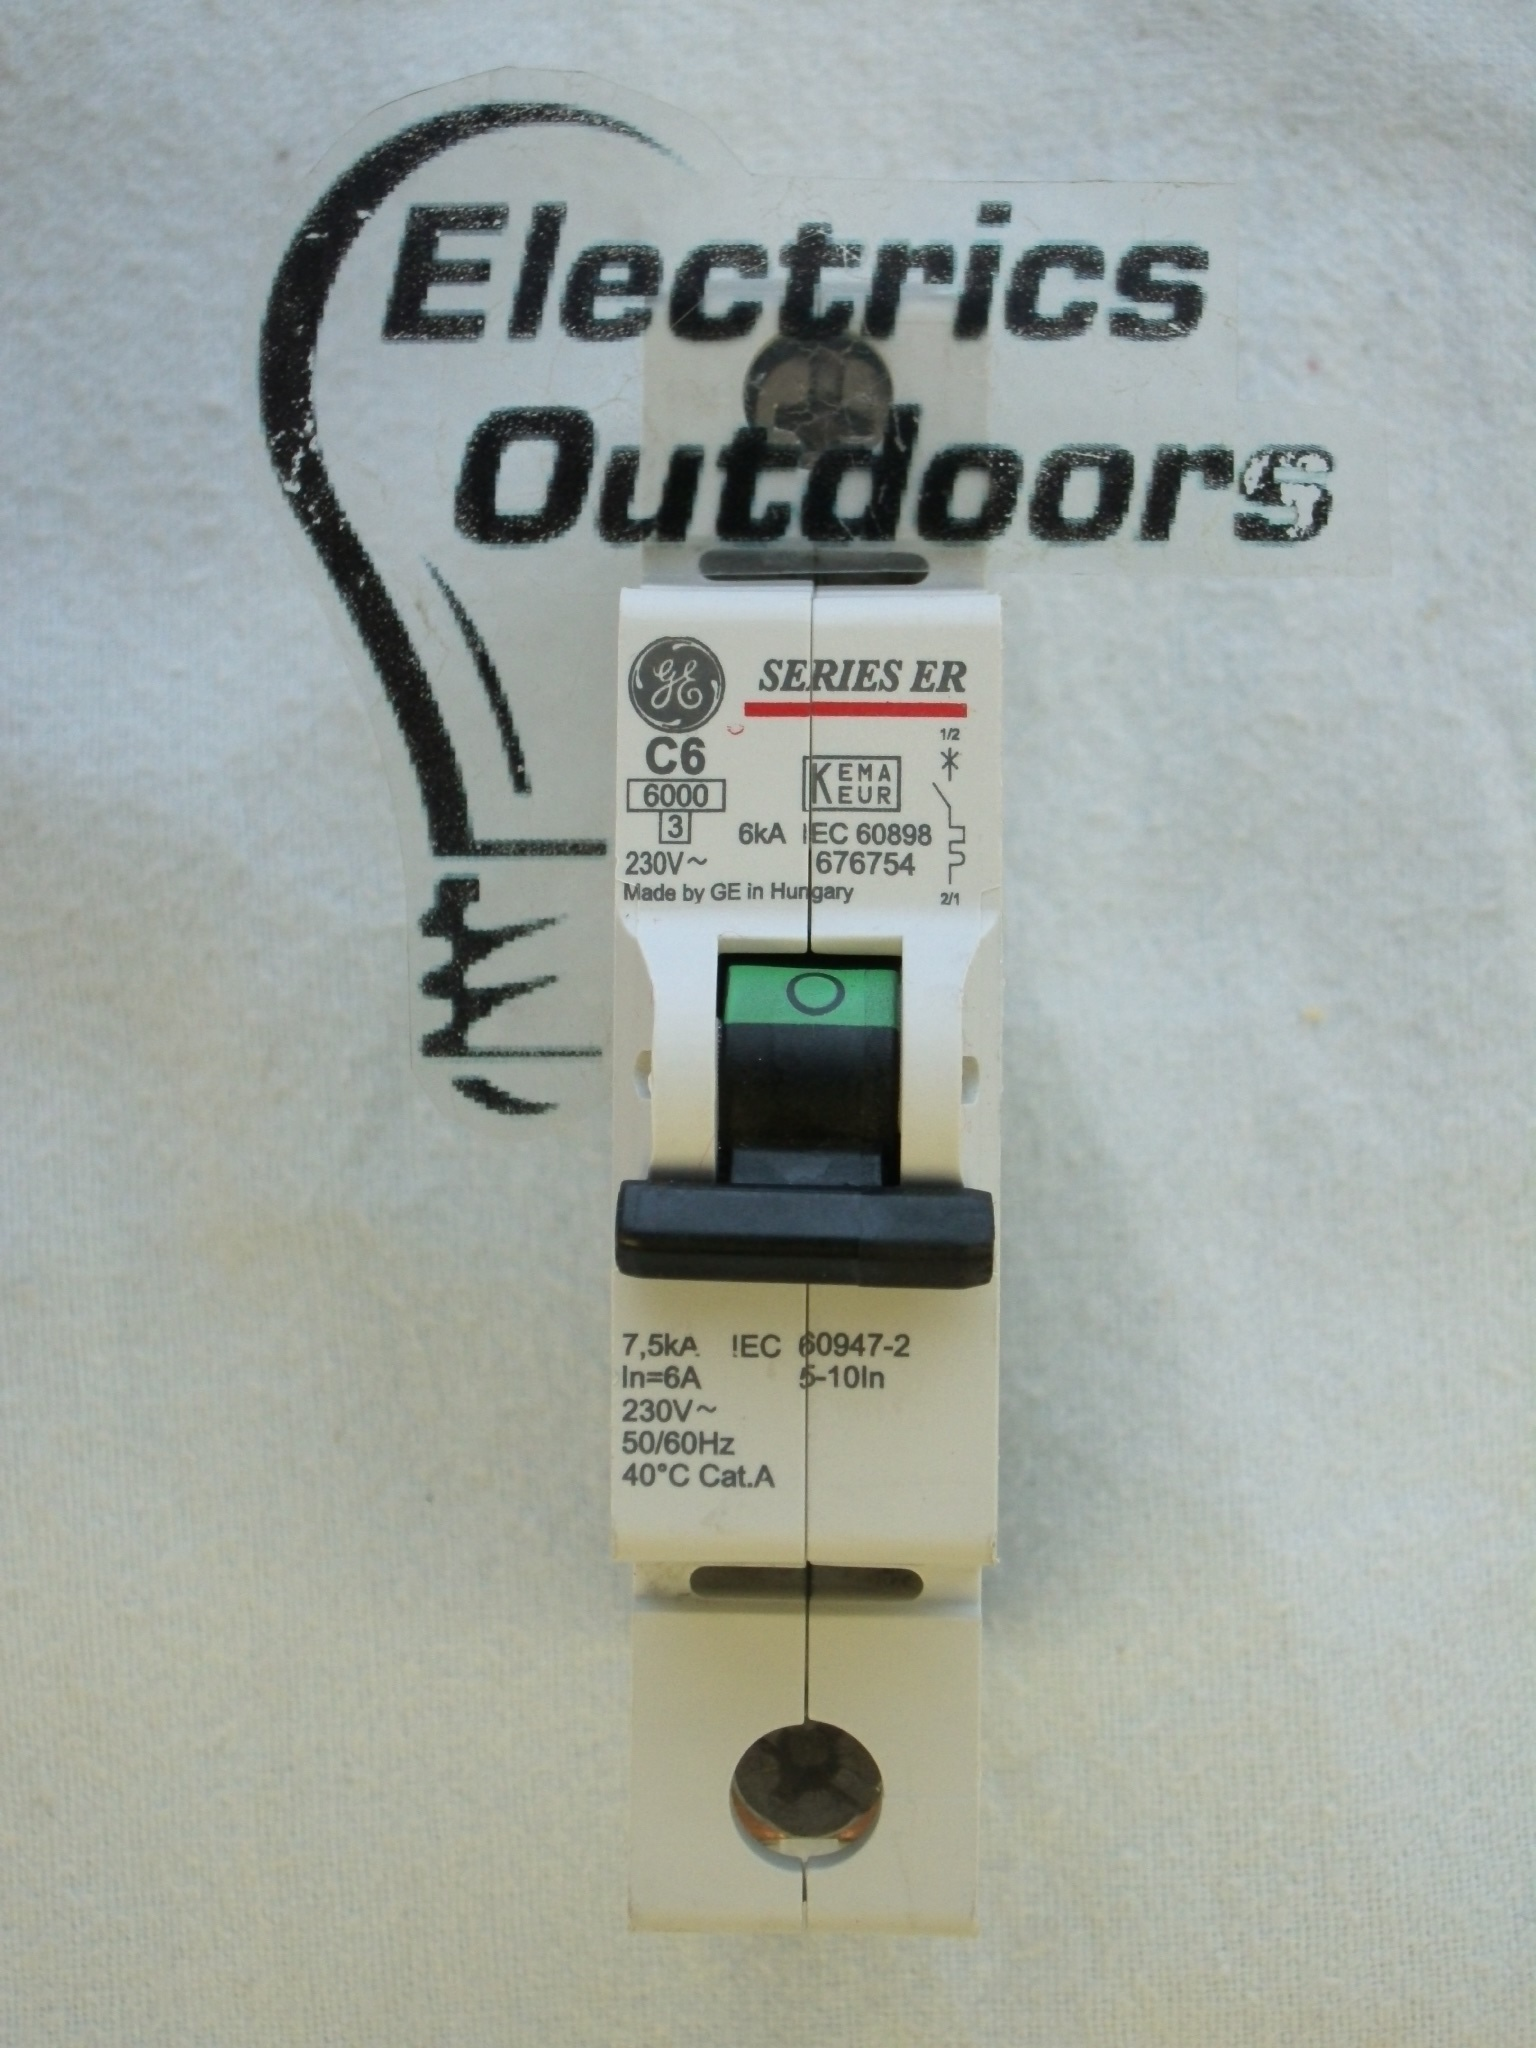 GENERAL ELECTRIC 6 AMP TYPE C 6 kA MCB CIRCUIT BREAKER SERIES ER 676754